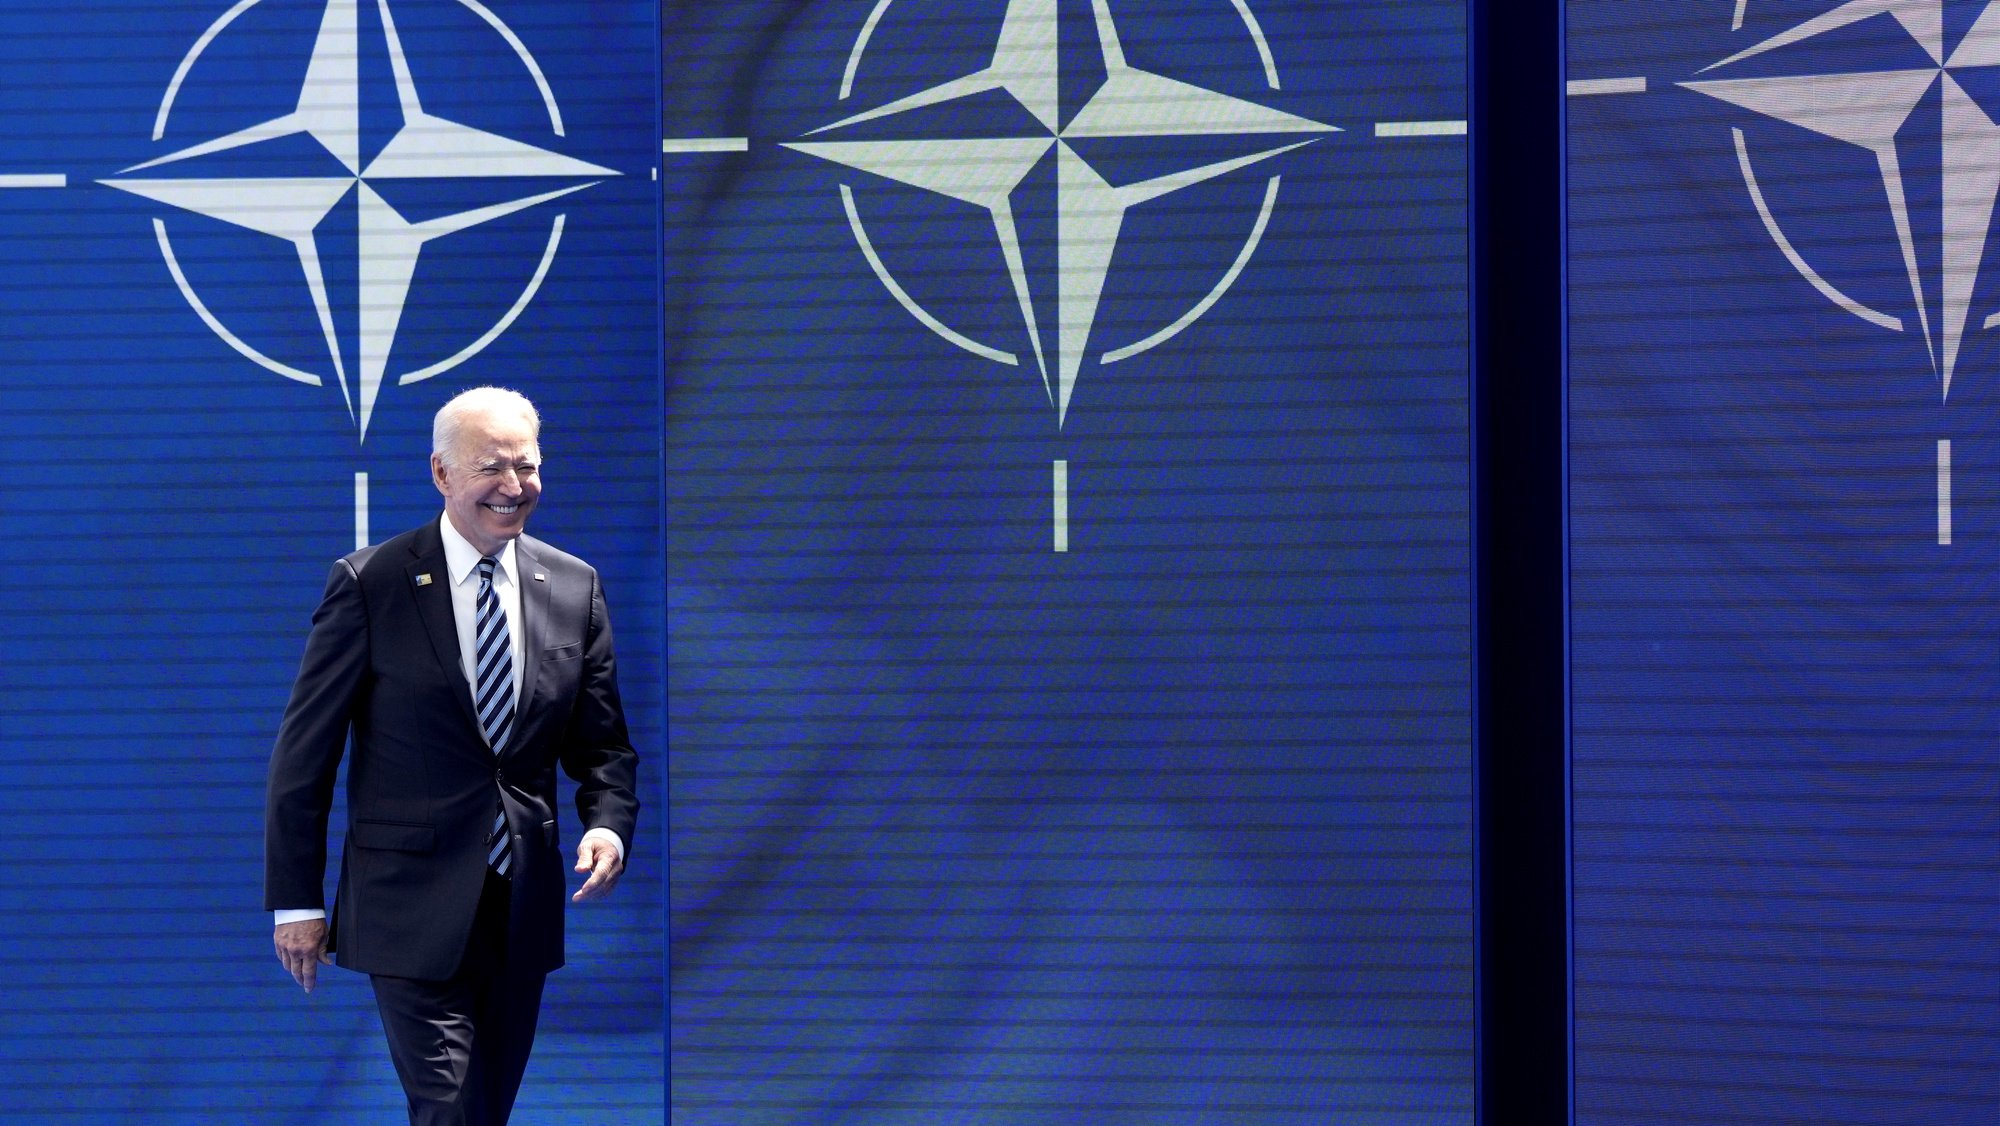 epa09270331 US President Joe Biden arrives for a NATO summit at NATO headquarters in Brussels, Belgium, 14 June 2021. The 30-nation alliance hopes to reaffirm its unity and discuss increasingly tense relations with China and Russia, as the organization pulls its troops out after 18 years in Afghanistan.  EPA/FRANCOIS MORI / POOL